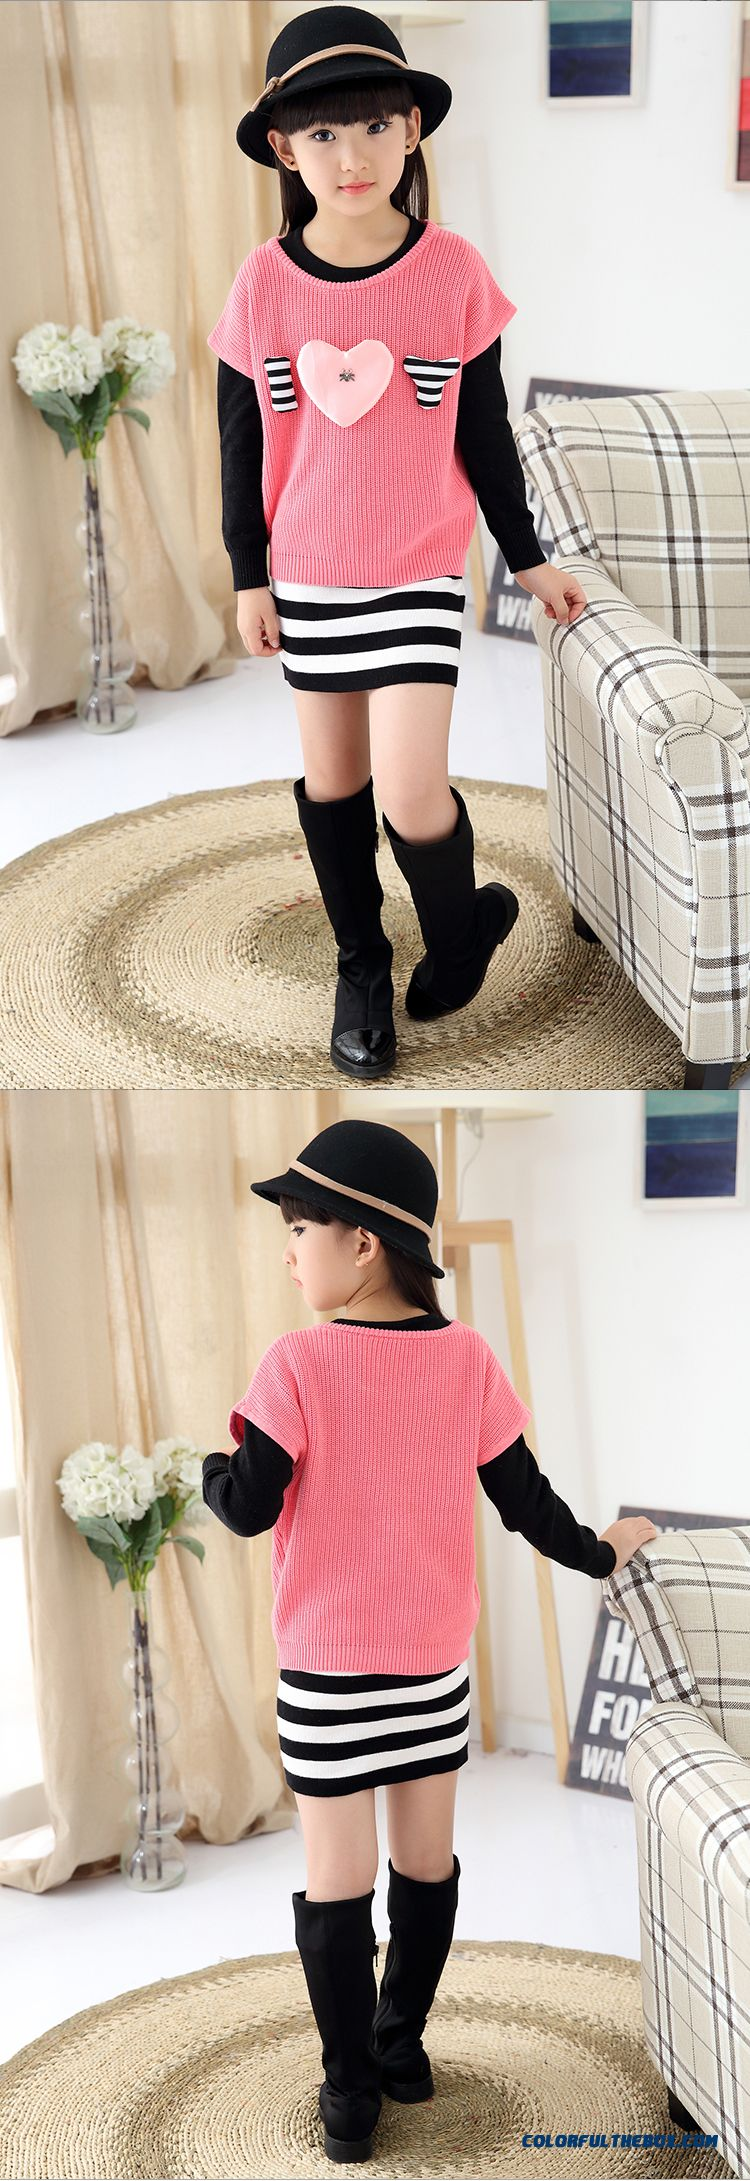 Girls Spring New Fake Two-piece Dress Lady Sweater Dress Medium-long Design For Kids - detail images